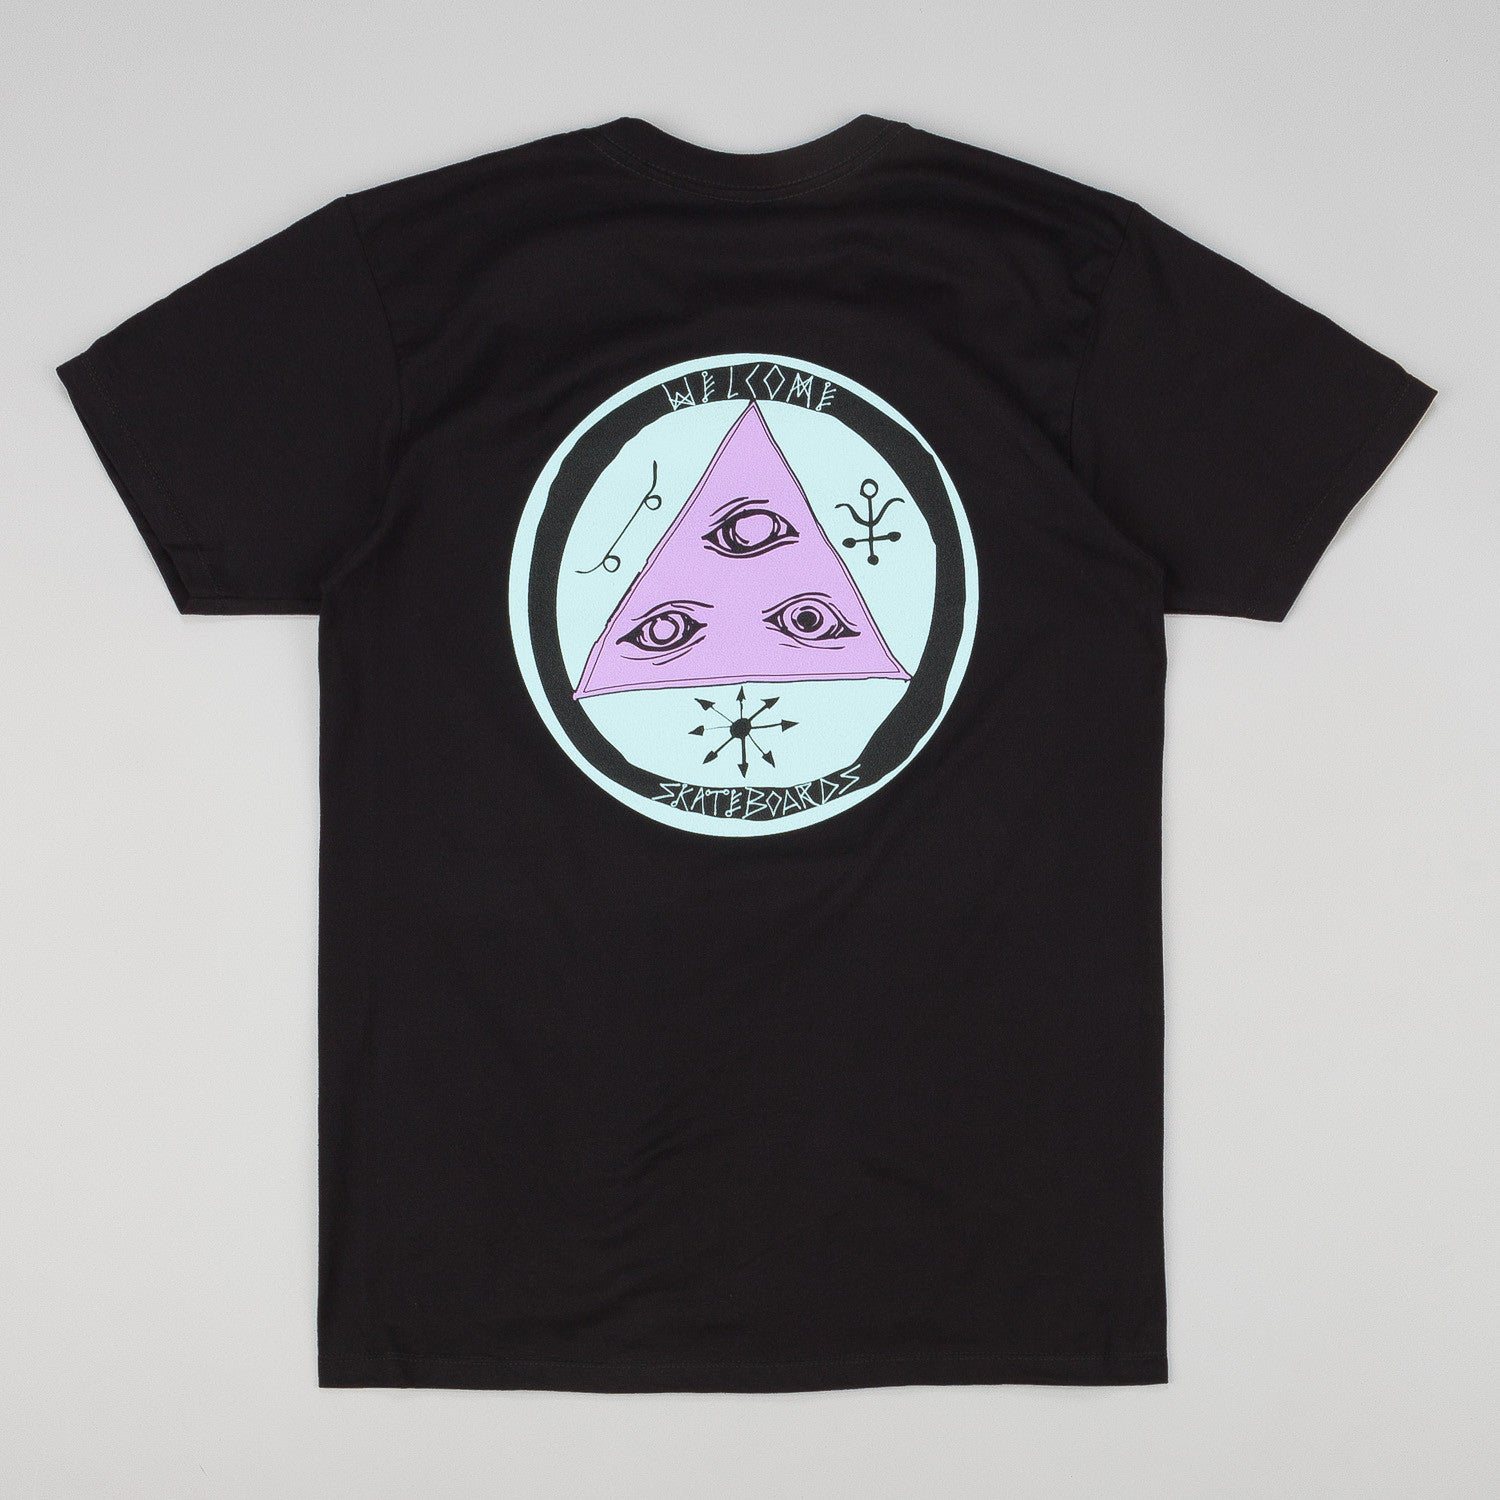 Welcome Talisman Tri Colour T-Shirt - Black / Purple / Teal